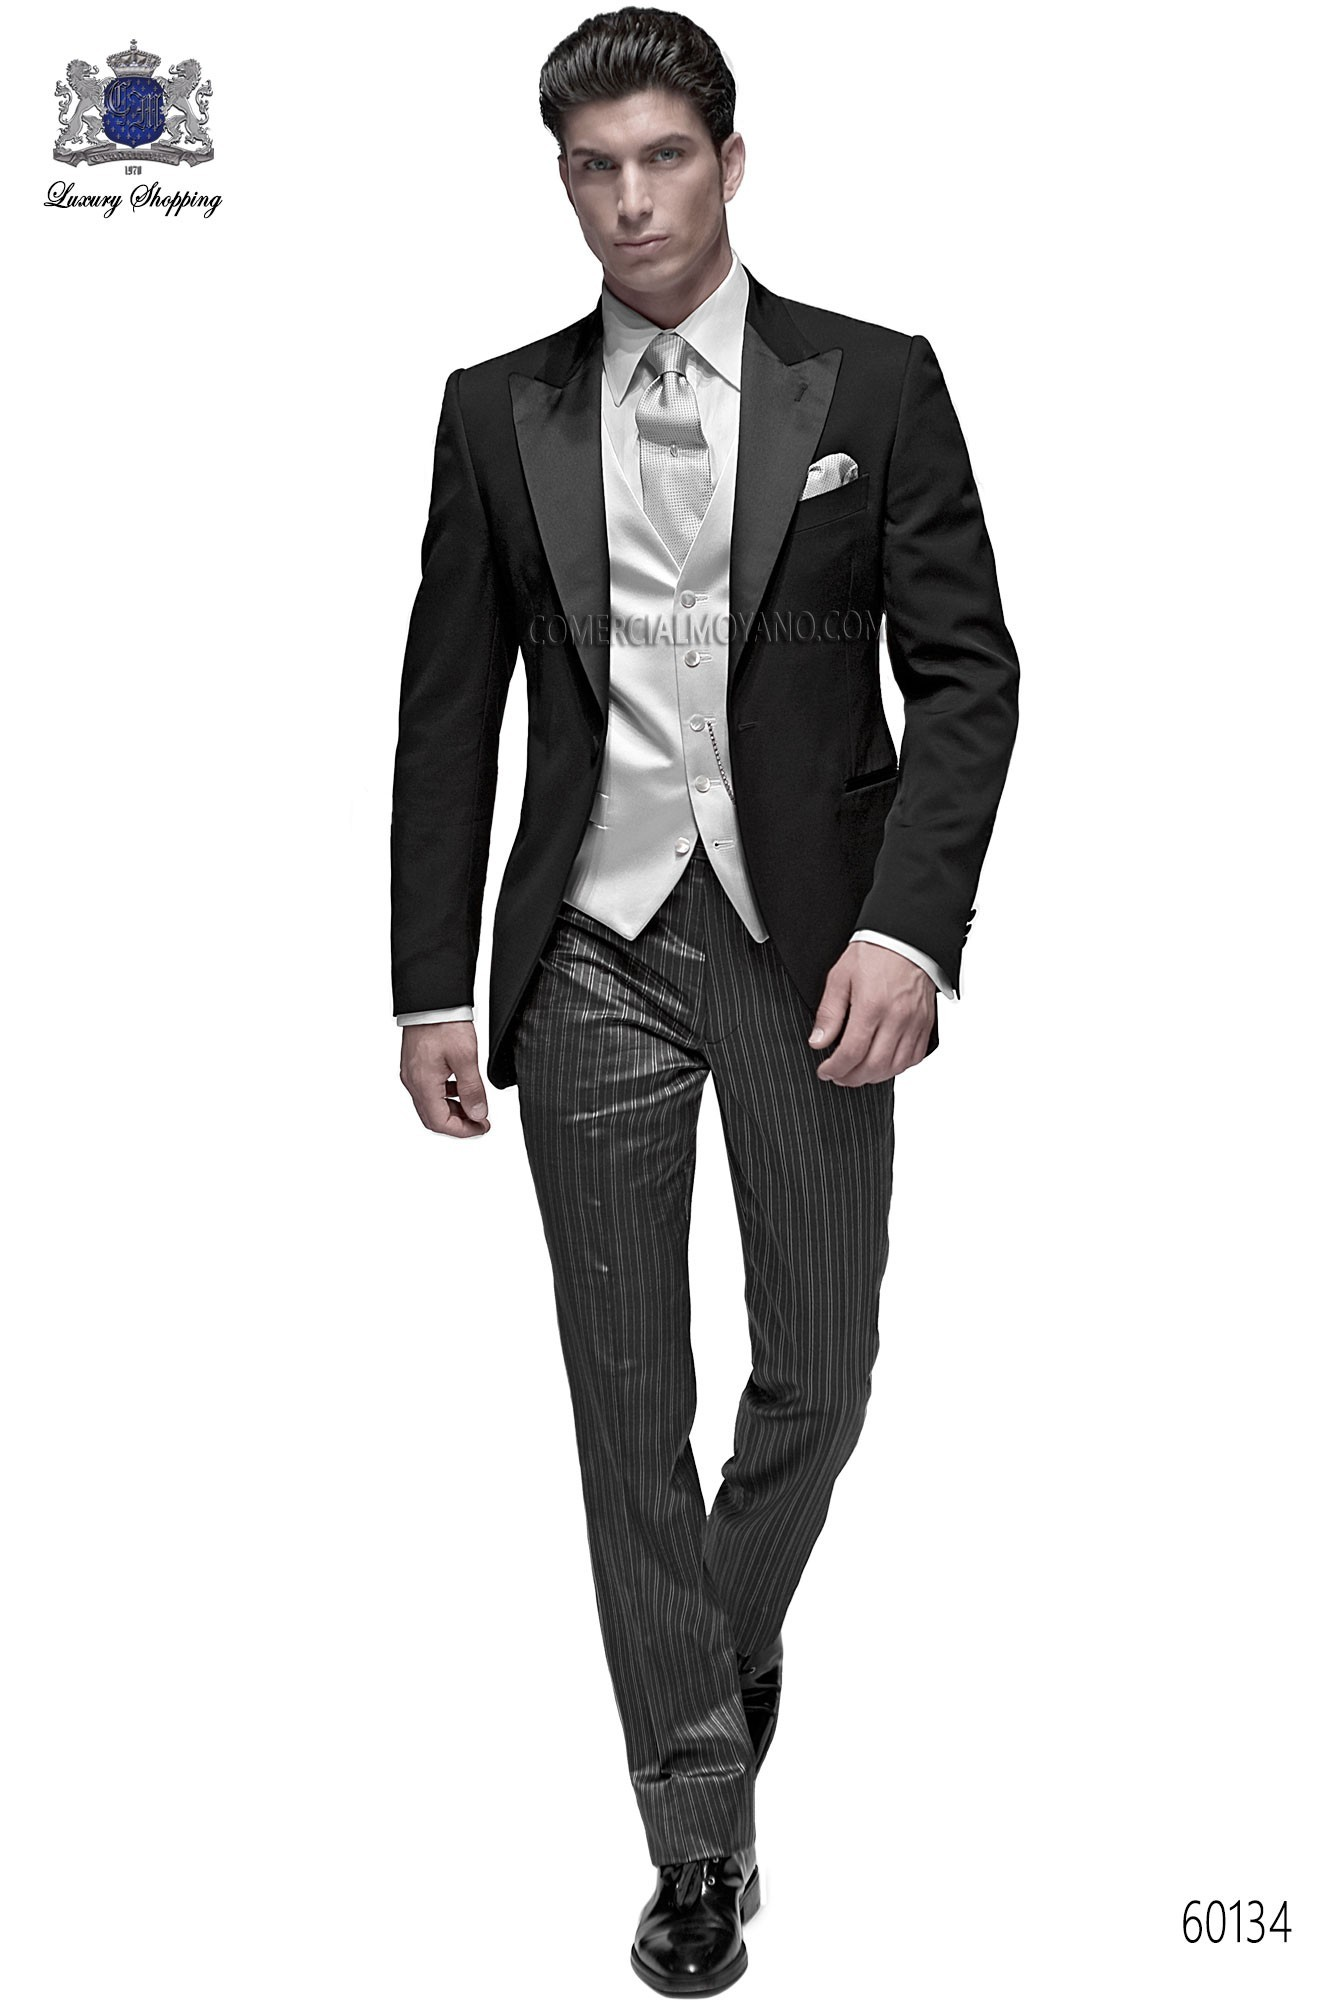 Italian bespoke suit, black jacket in wool-acetate fabric with peak lapel and 1 button closure; with striped trousers, style 60134 Ottavio Nuccio Gala, 2015 Fashion collection.